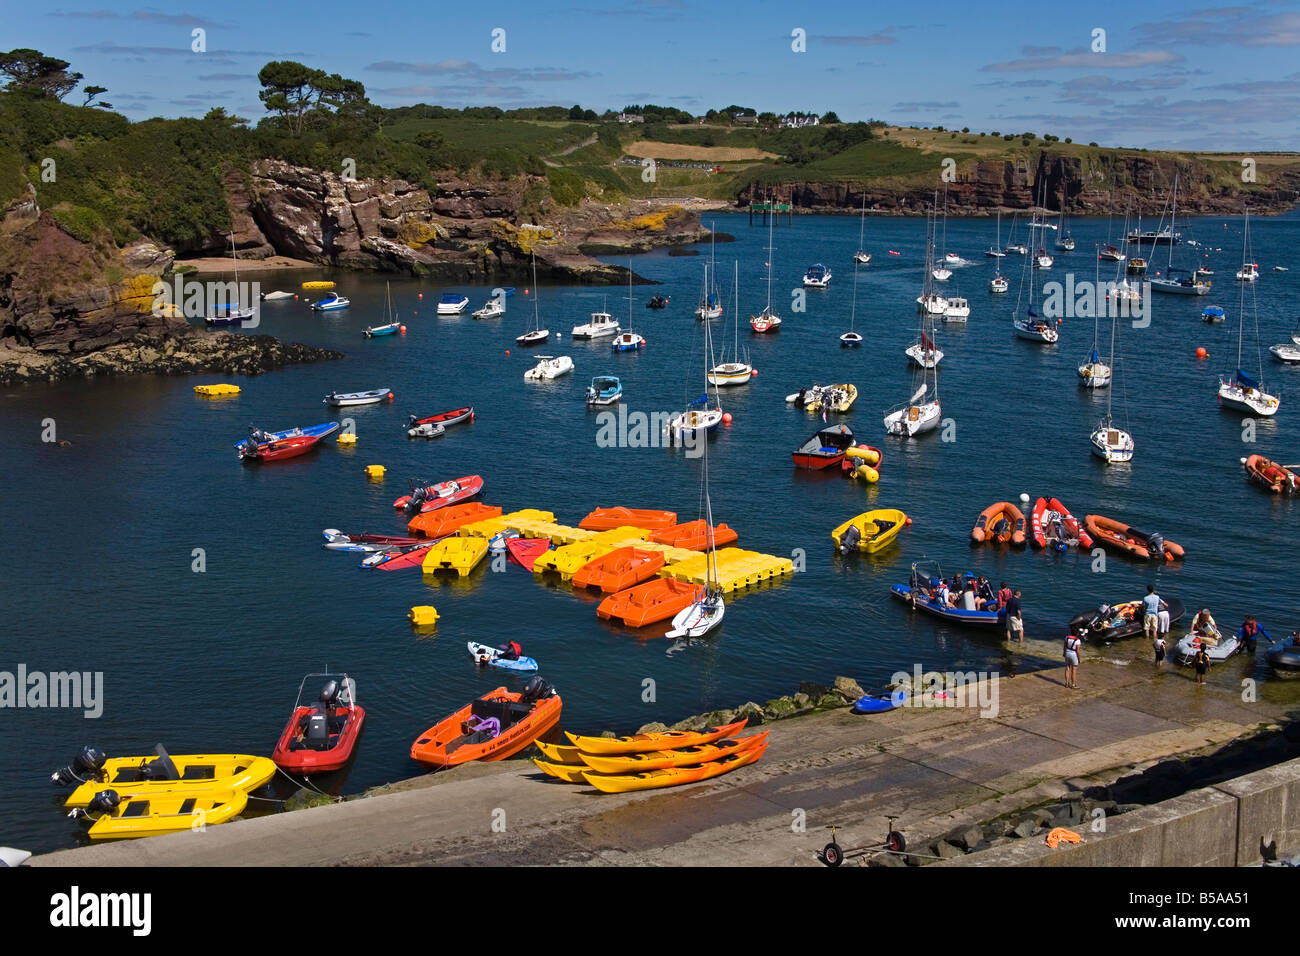 Adventure Centre, Dunmore East Harbour, County Waterford, Munster, Republic of Ireland, Europe - Stock Image